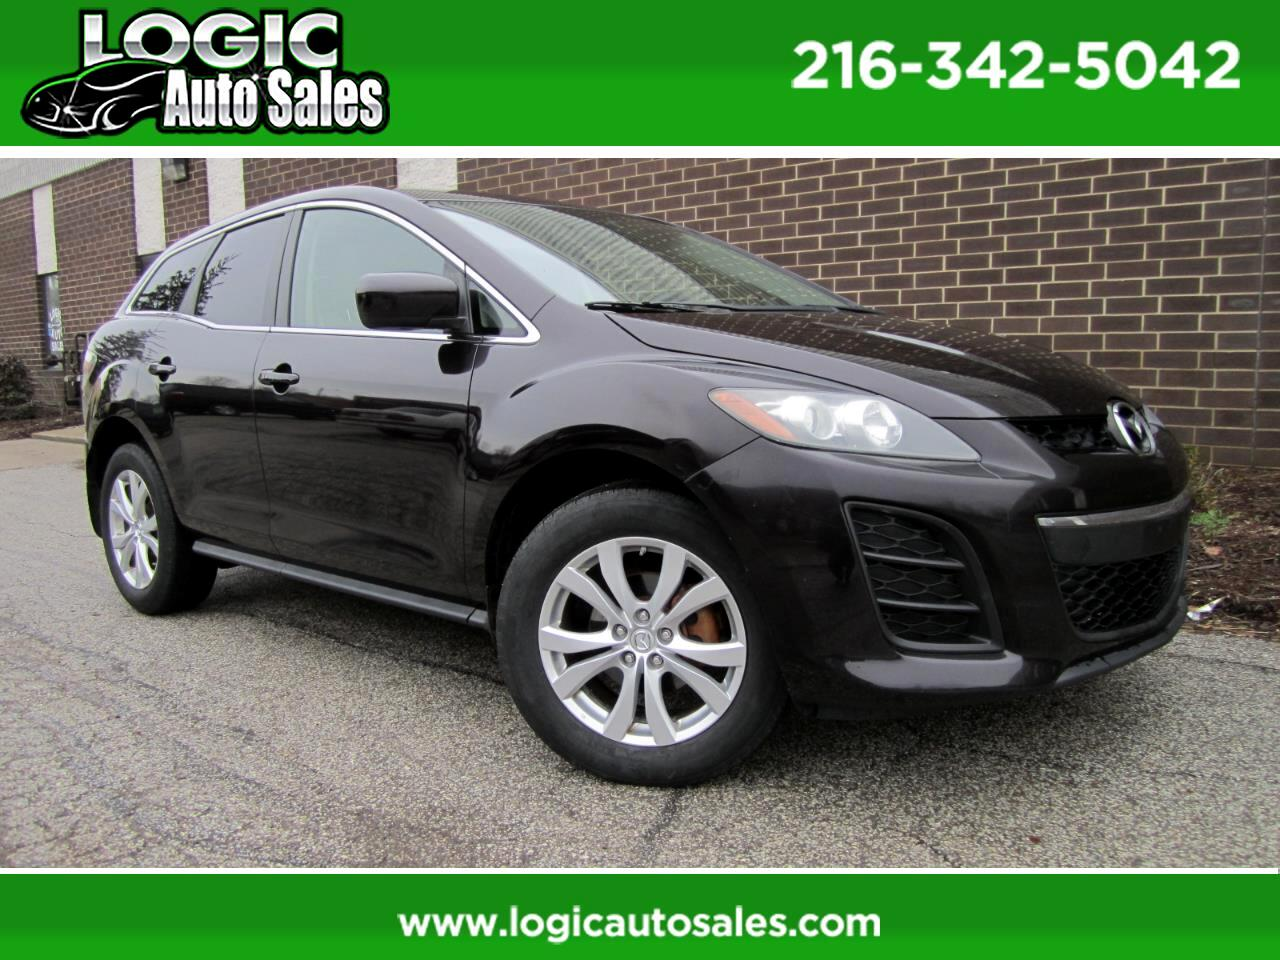 2010 Mazda CX-7 AWD 4dr s Touring